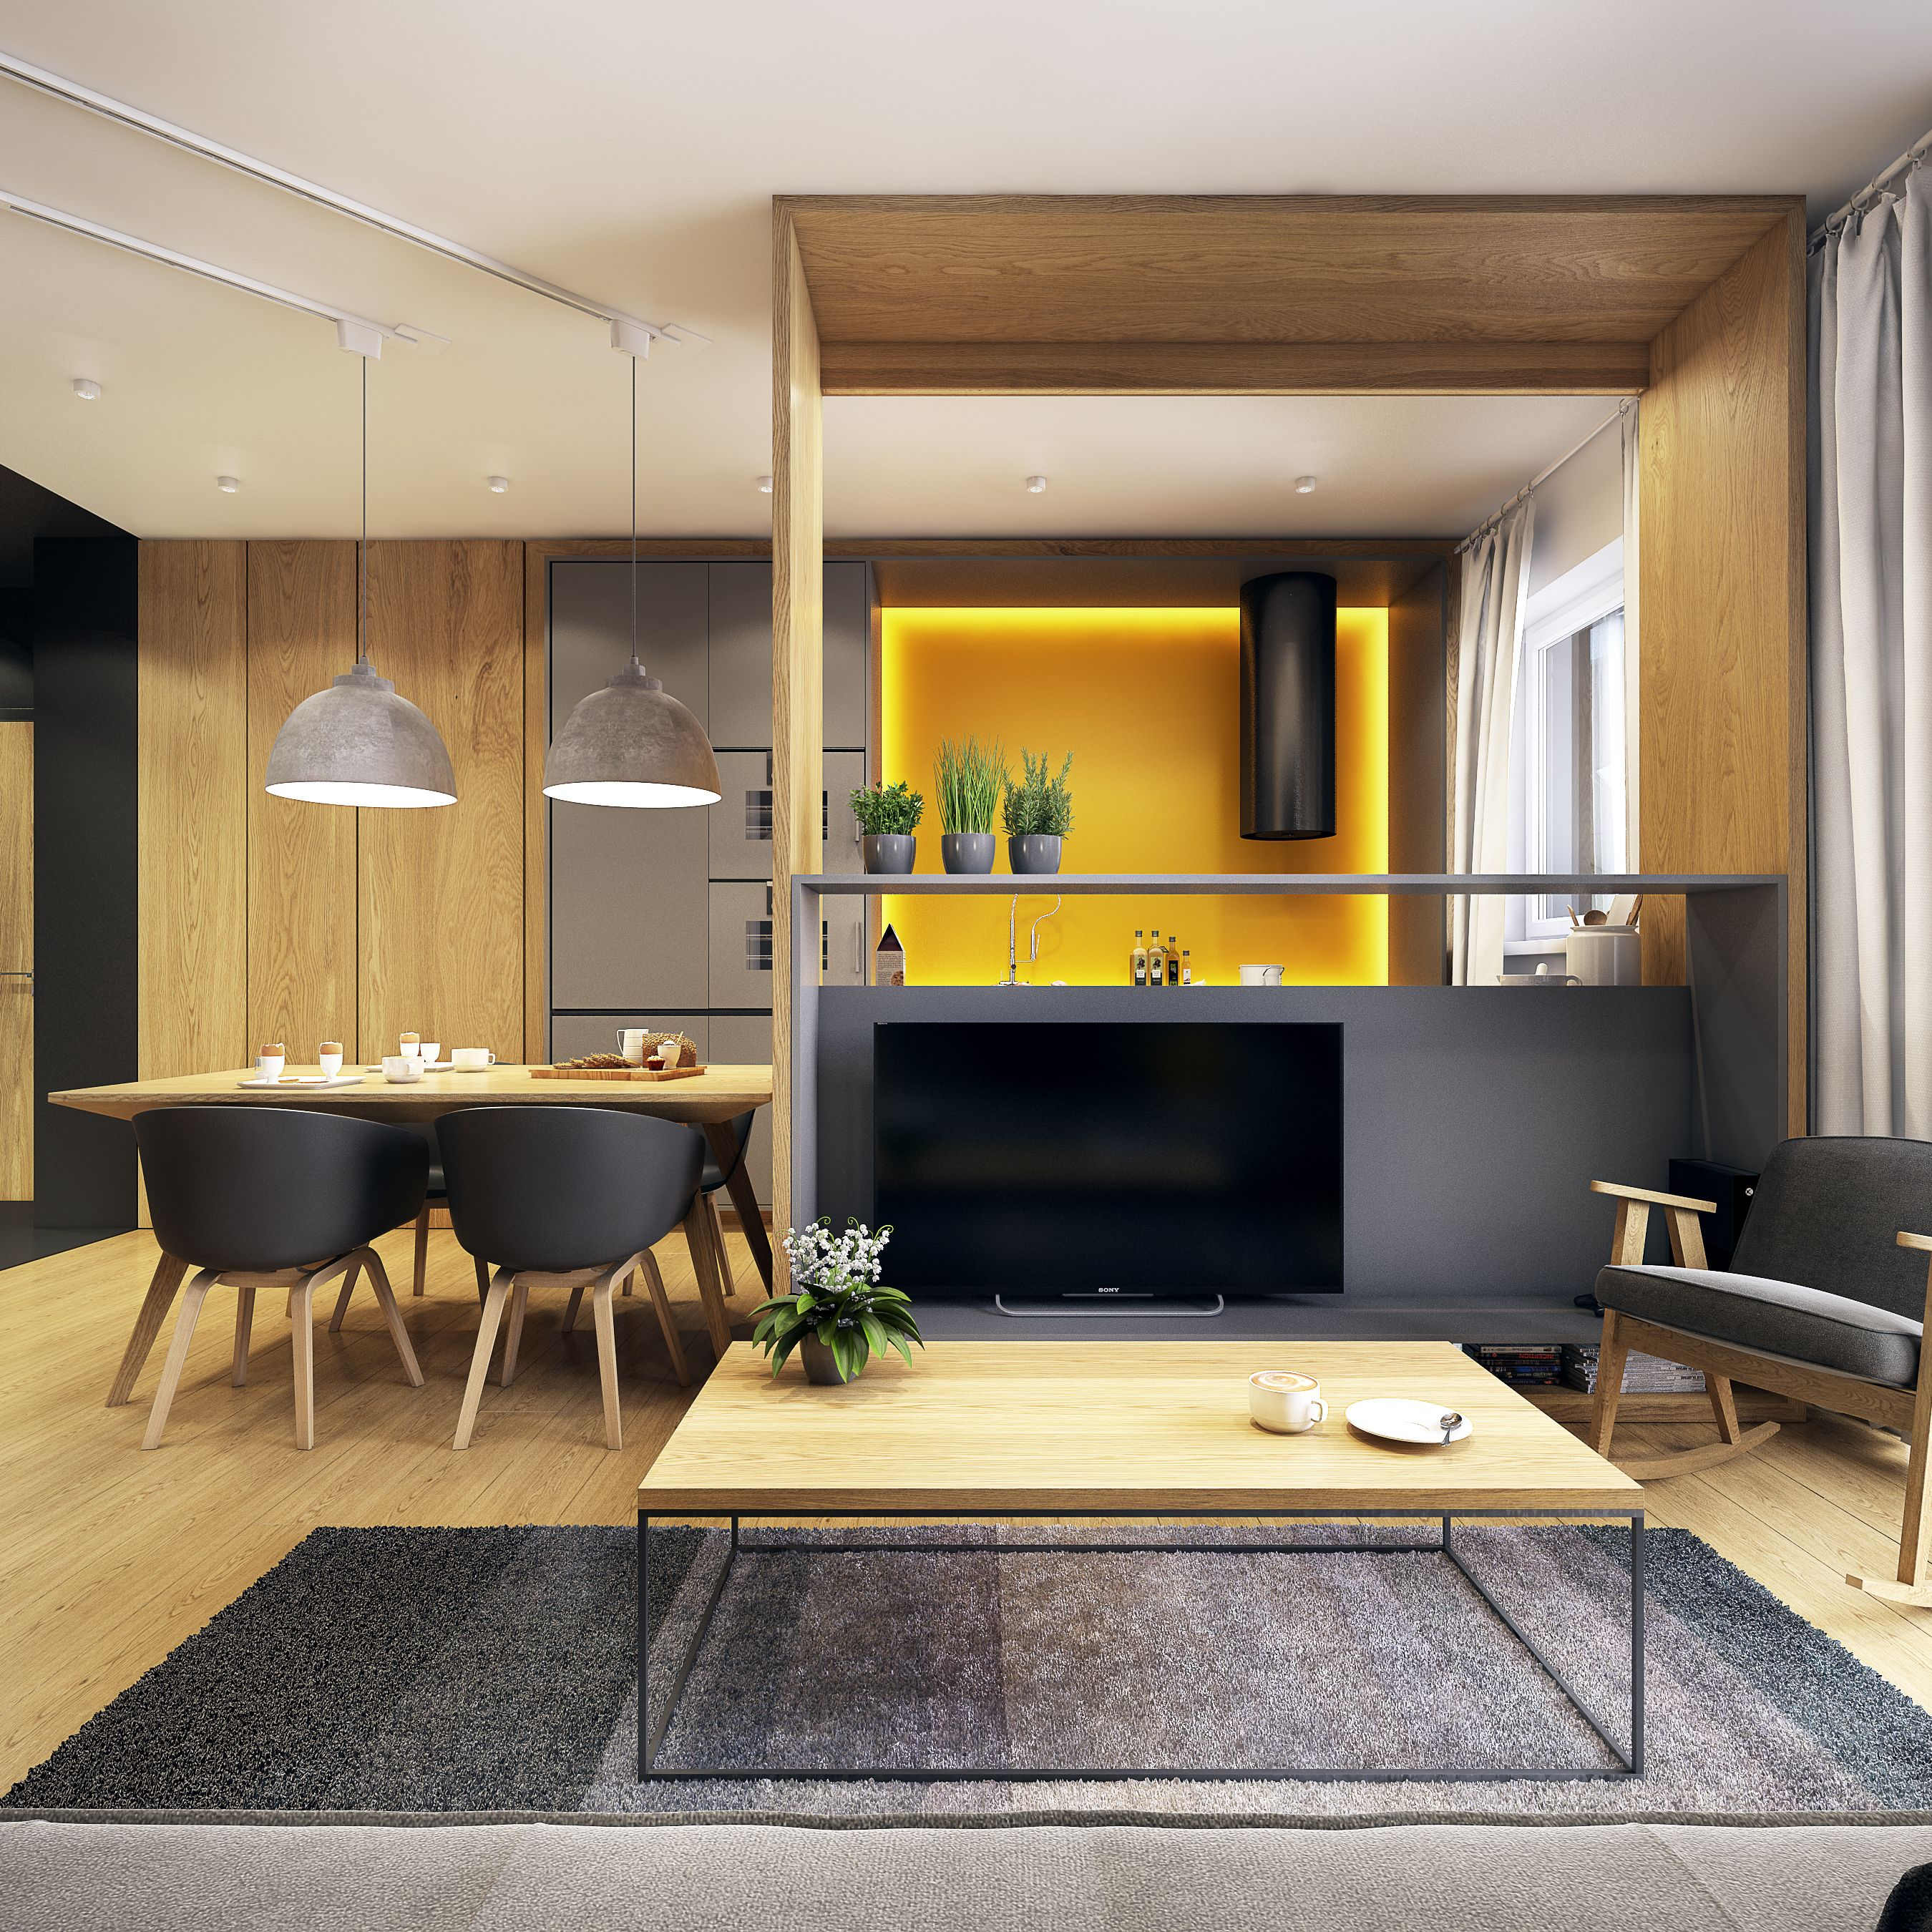 Scale/perspective. The division between kitchen and living space is ...